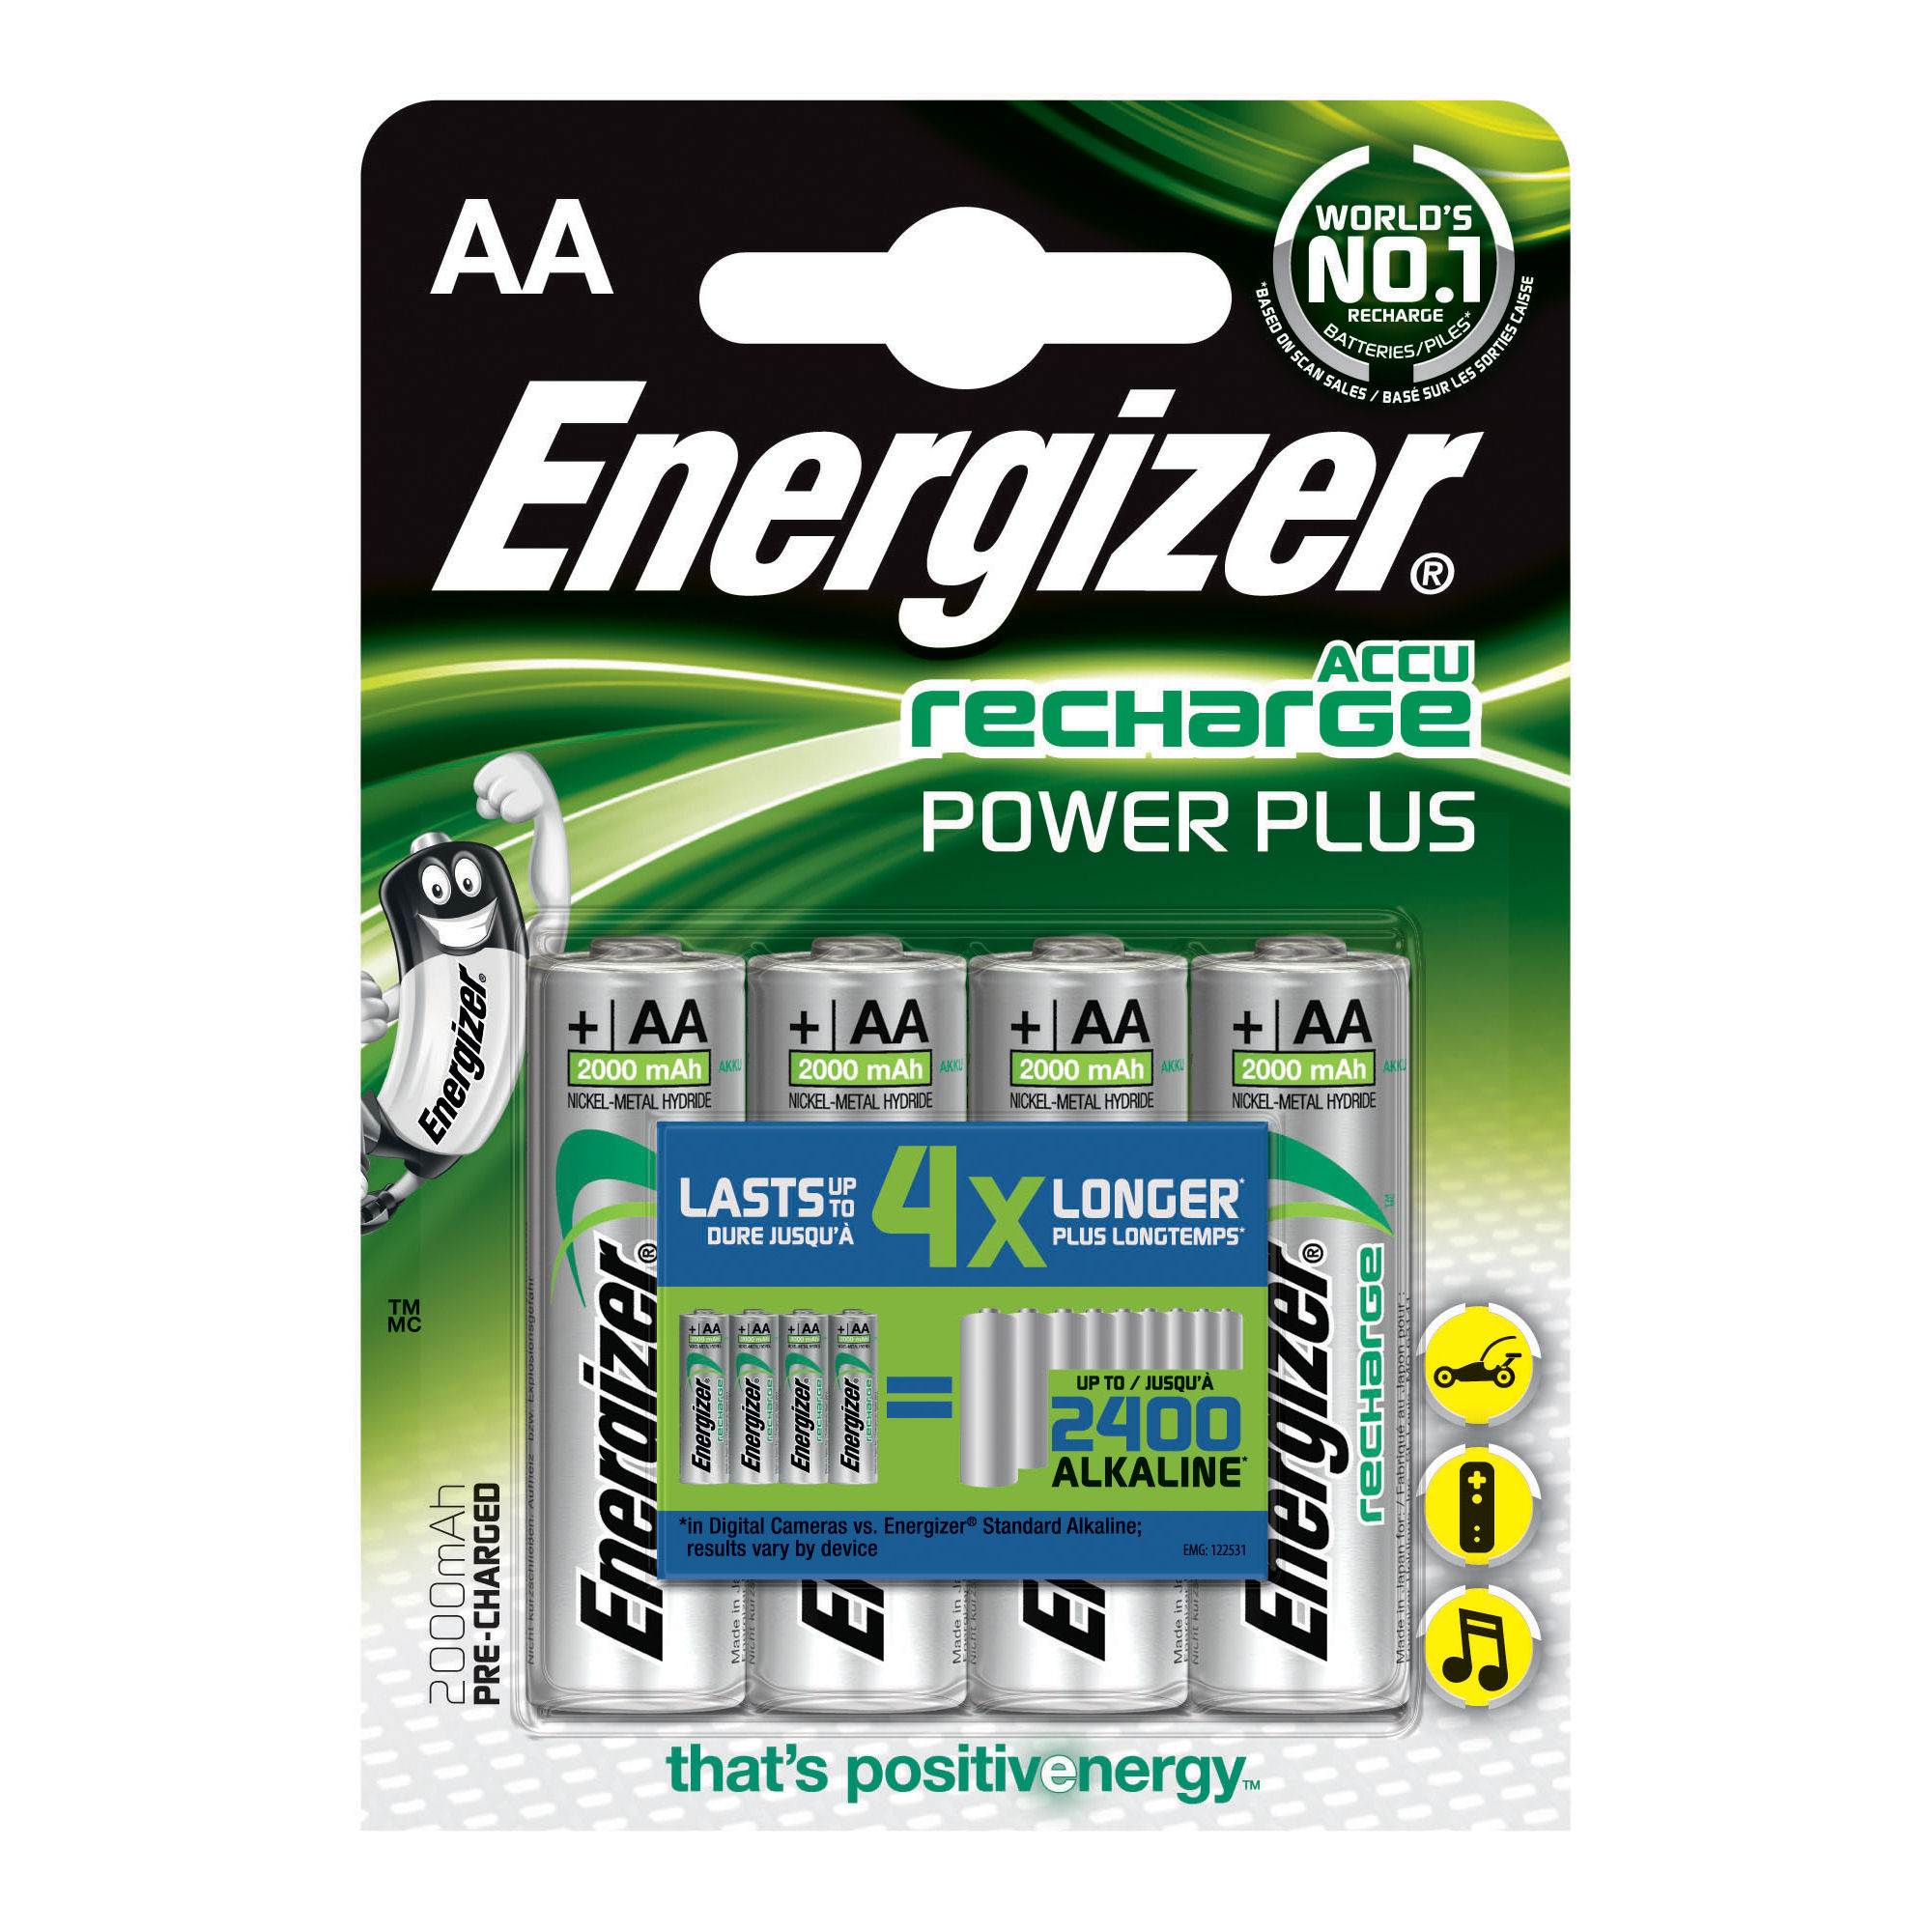 Energizer Rechargeable Battery AA 2000mAh (4) 635178